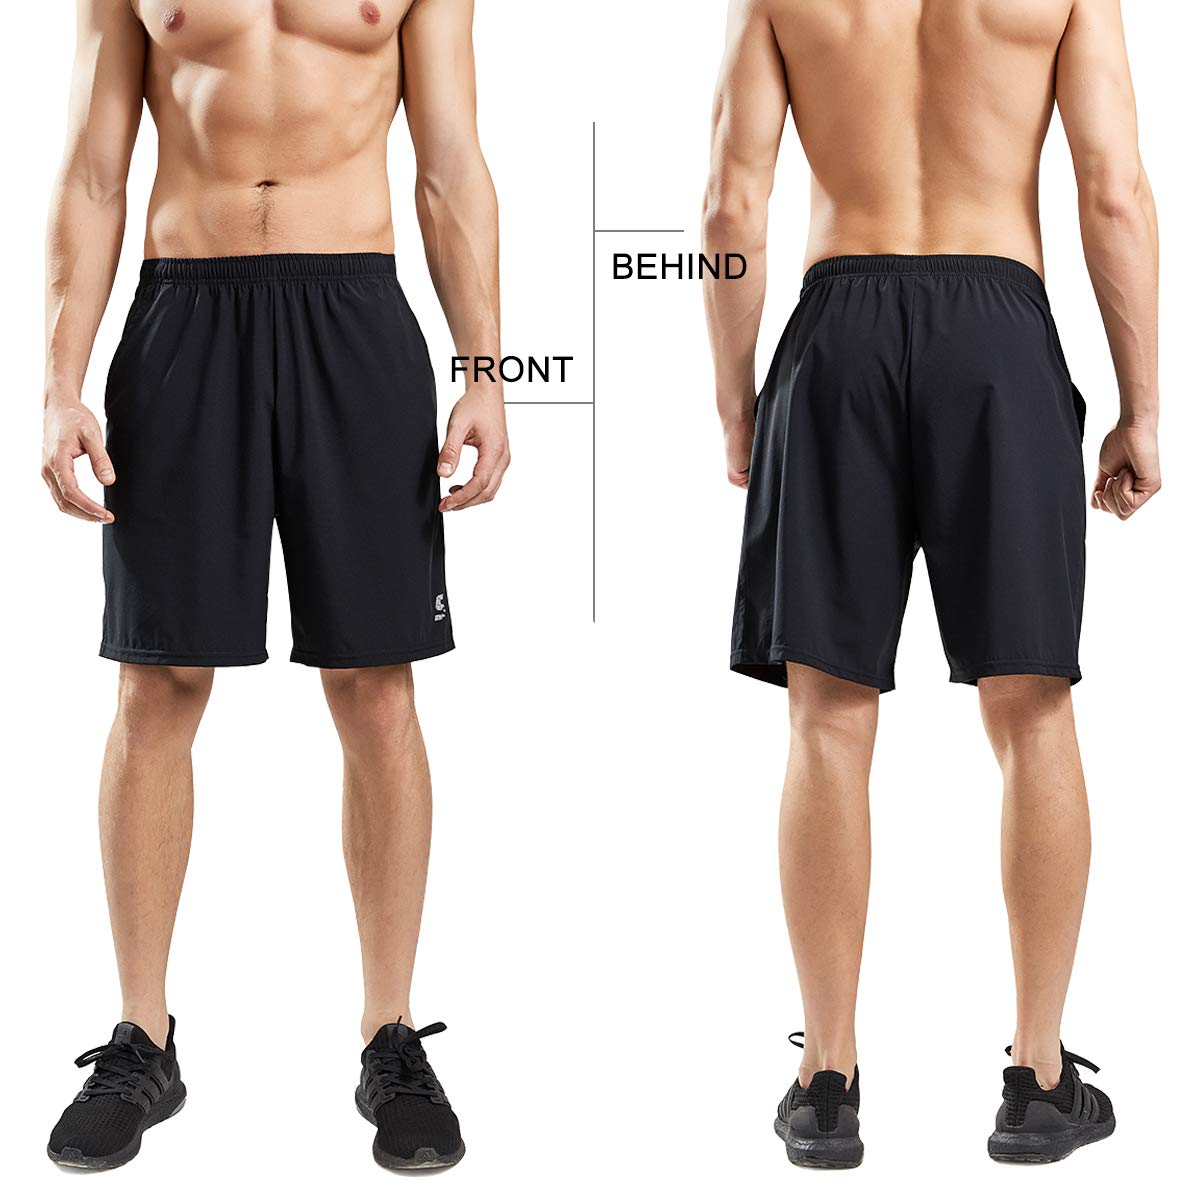 SS COLOR FISH Men Athletic Shorts with Pockets L Black